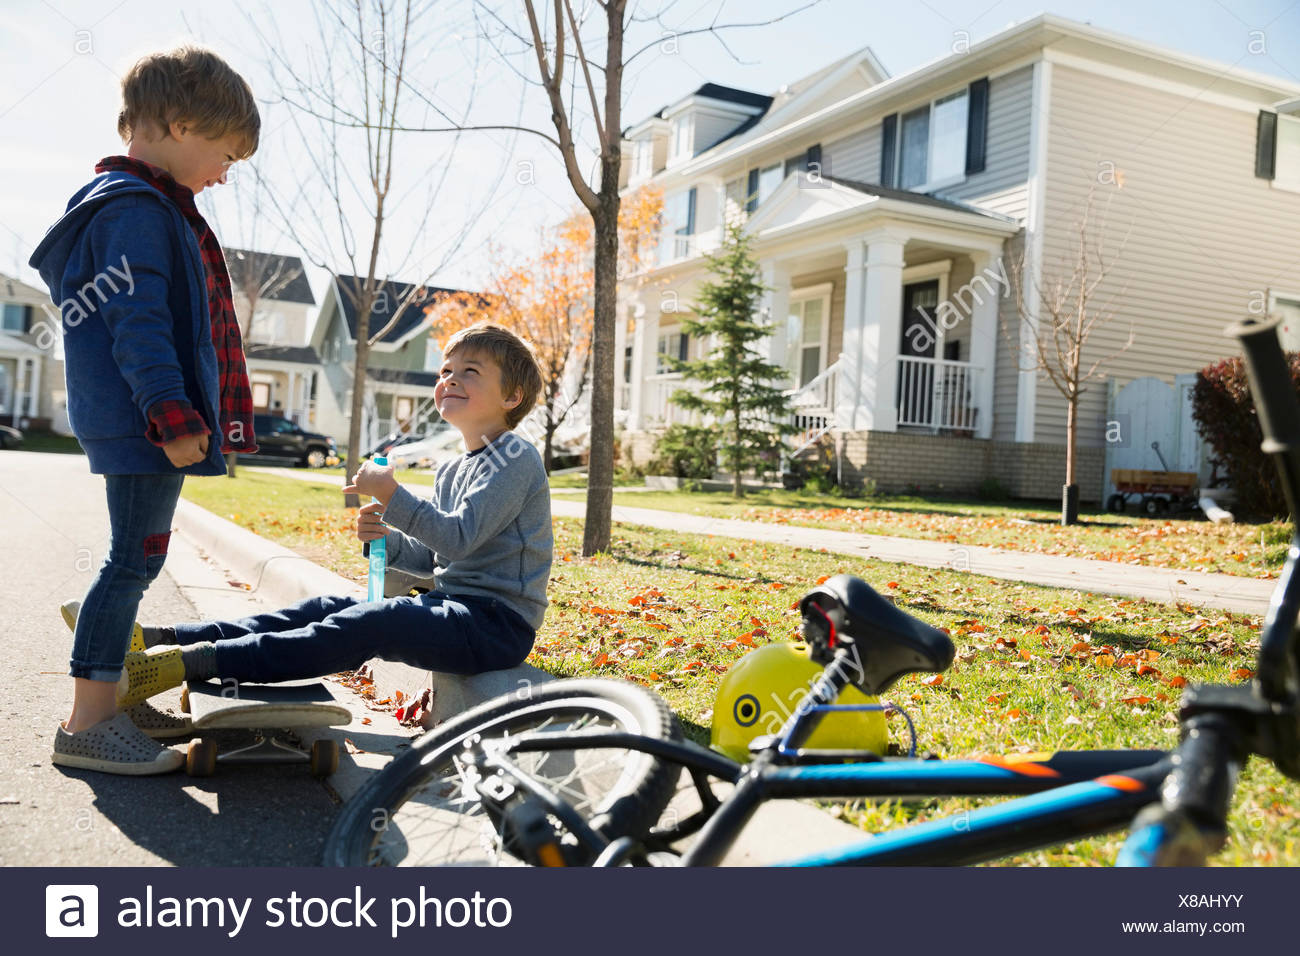 Brothers with bike and sidewalk at neighborhood curb - Stock Image